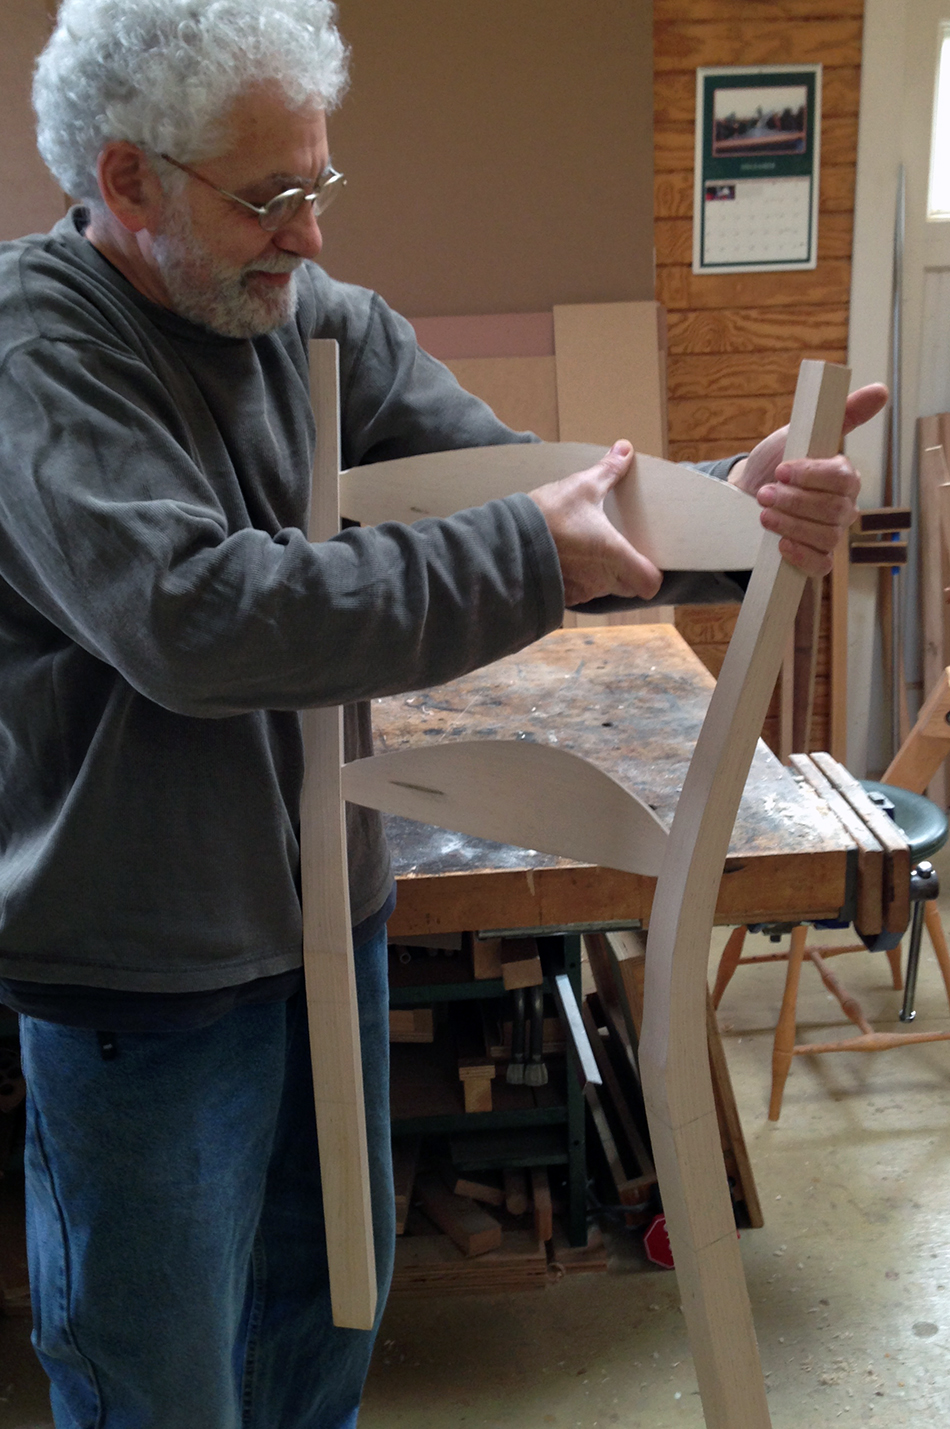 Fitting Slats: Squeezing the rear panel assembly together